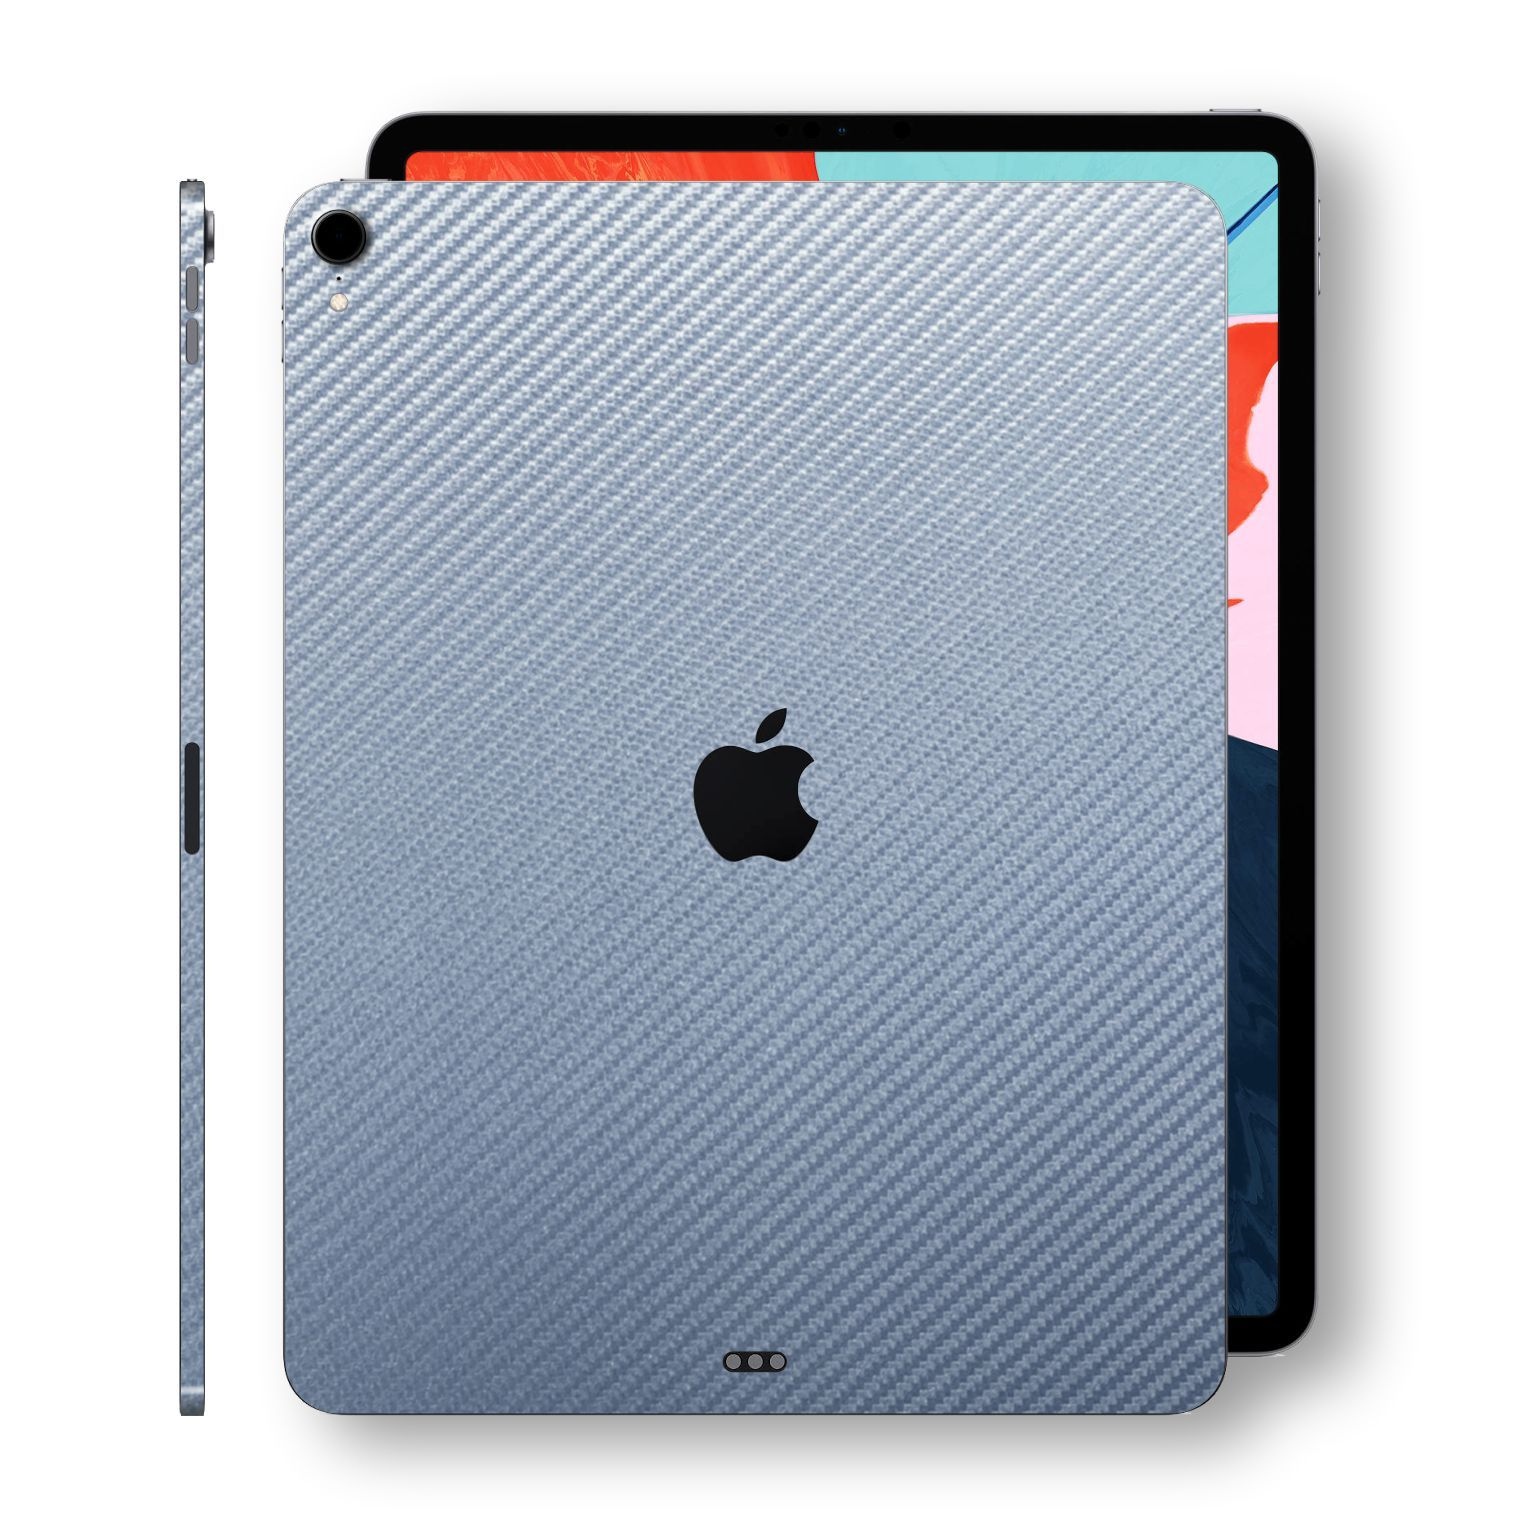 "iPad PRO 12.9"" 3rd Generation 2018 Arctic Blue 3D Textured CARBON Fibre Fiber Skin Wrap Sticker Decal Cover Protector by EasySkinz"